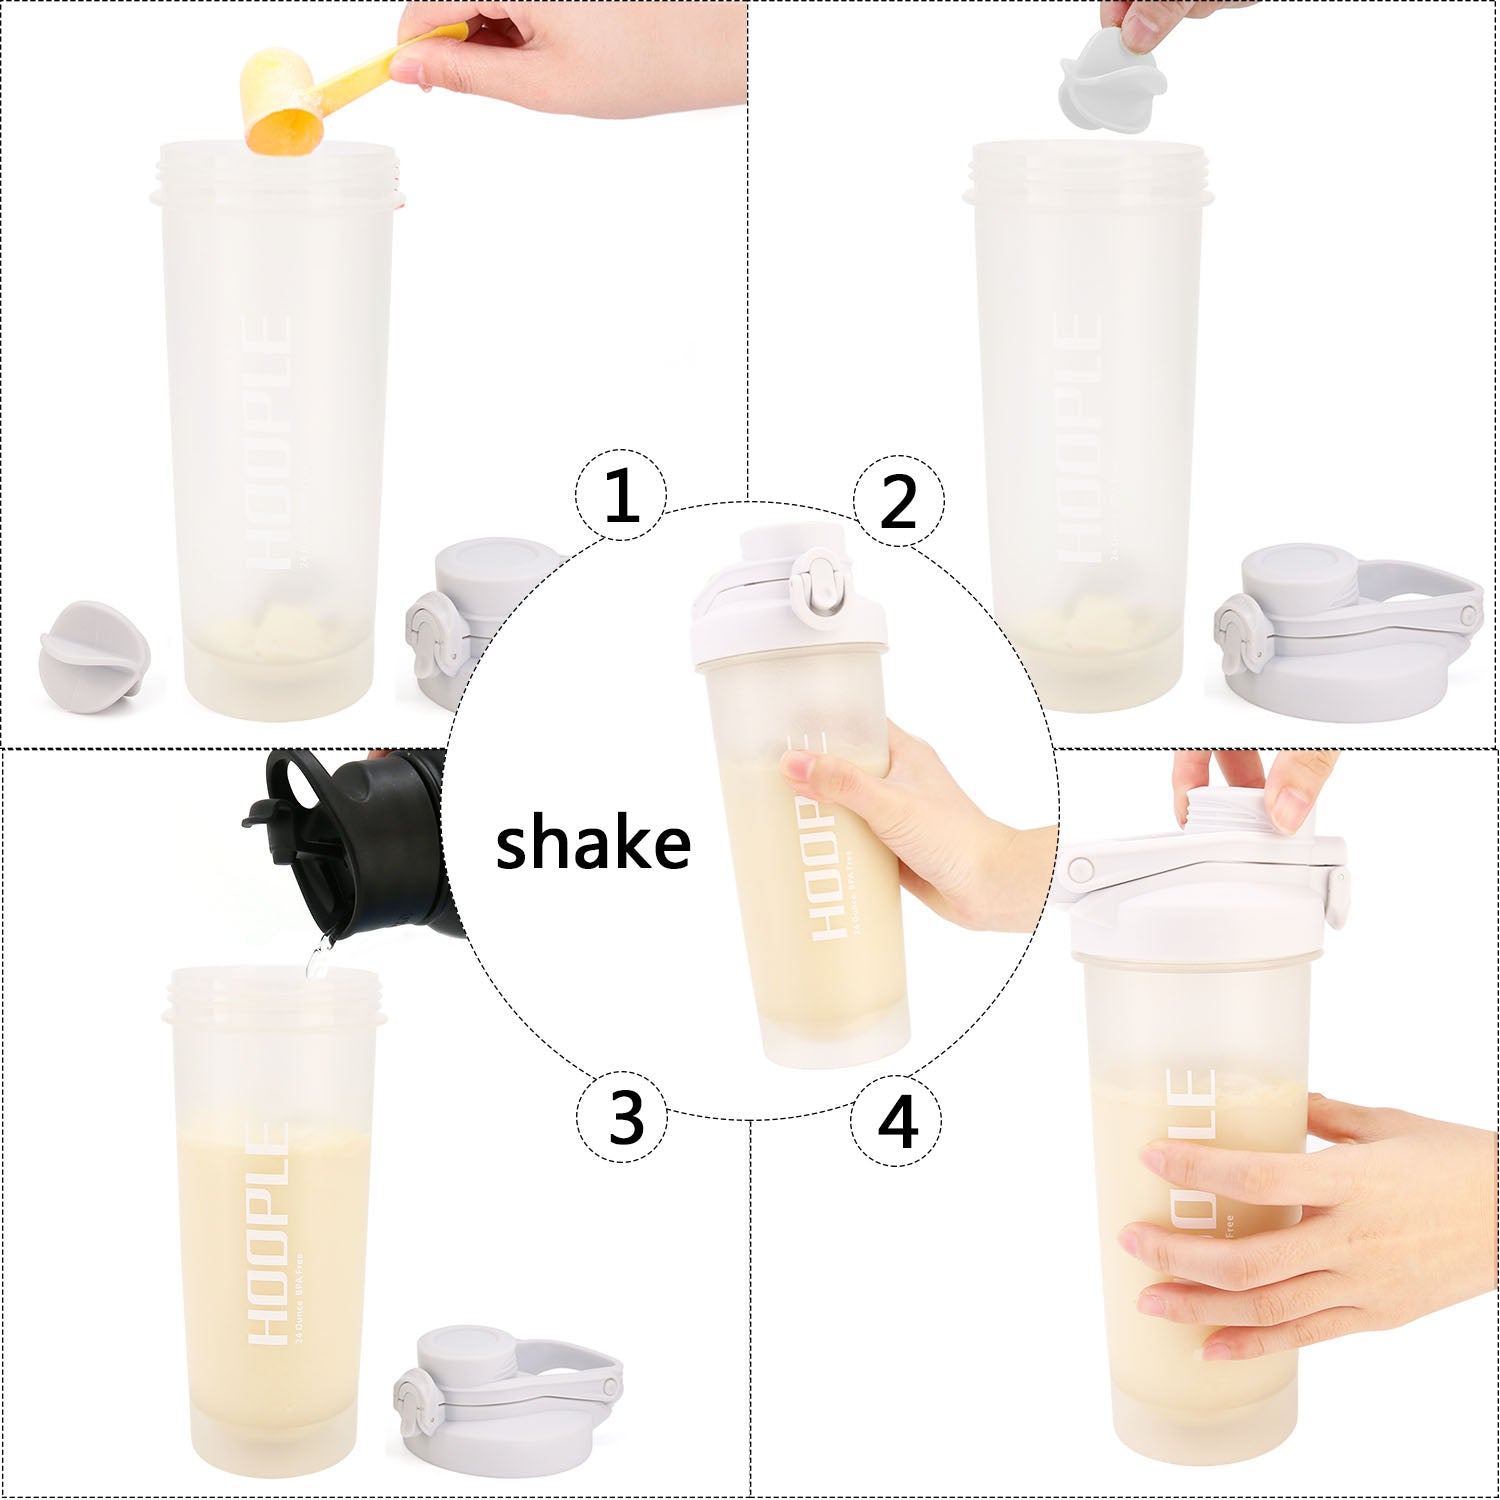 Hoople 24 OZ Shaker Bottle Protein Powder Shake Blender Gym Smoothie Cup, BPA Free, Auto-Flip Leak-Proof Lid, Handle with Ball Included - Gray